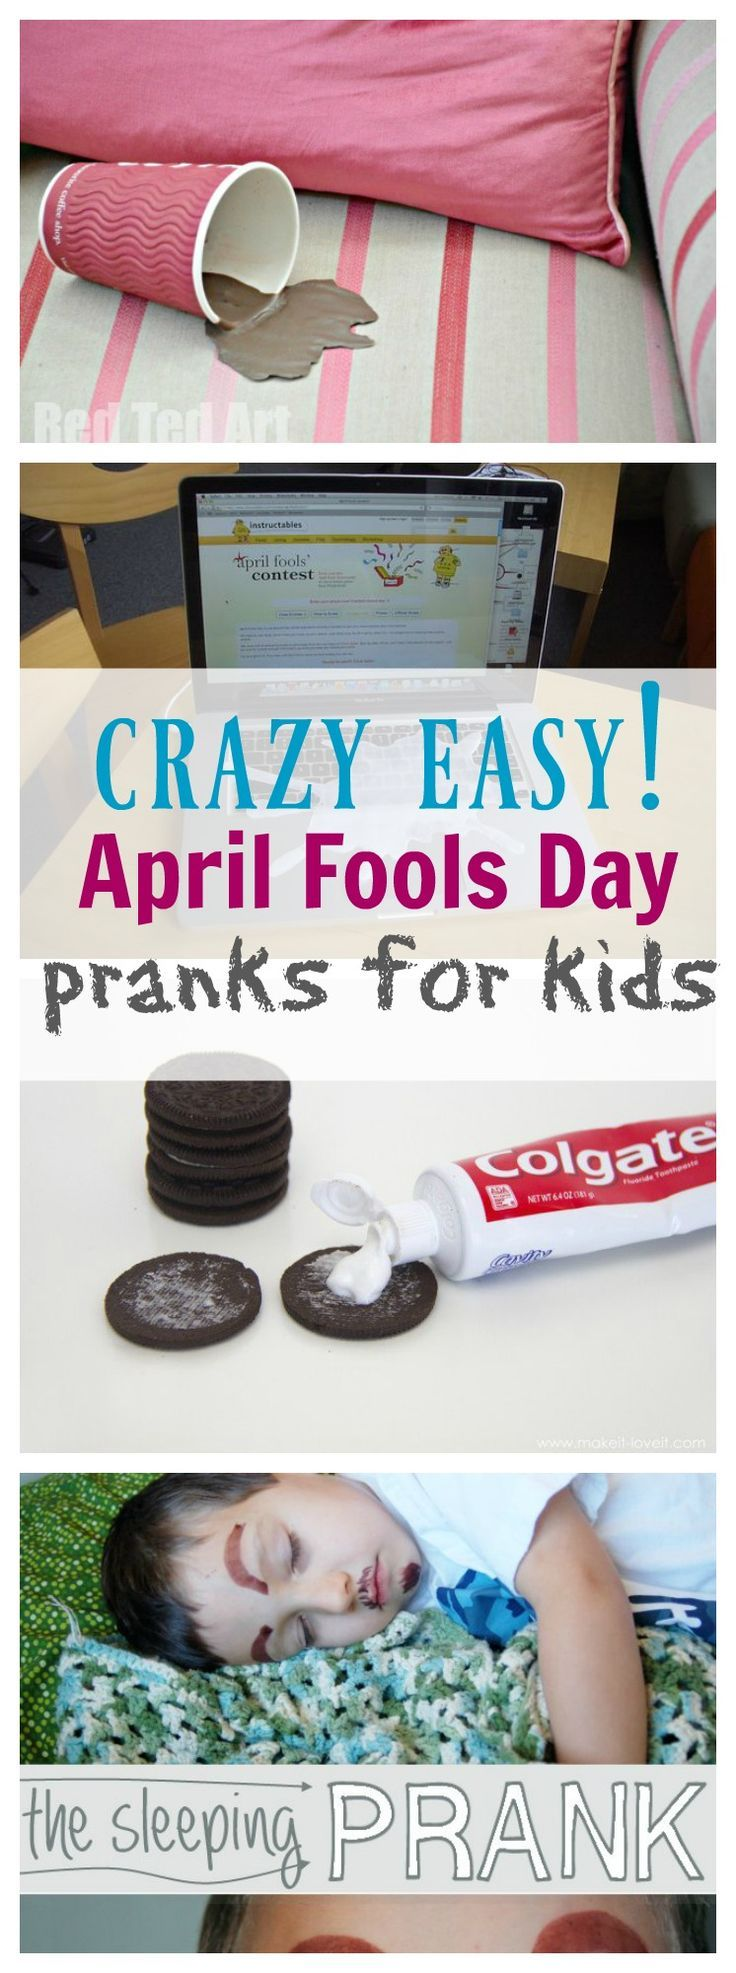 April Fools Day Pranks For Kids Scary And Stitch - 53 hilarious april fools pranks took game another level 6 just brilliant